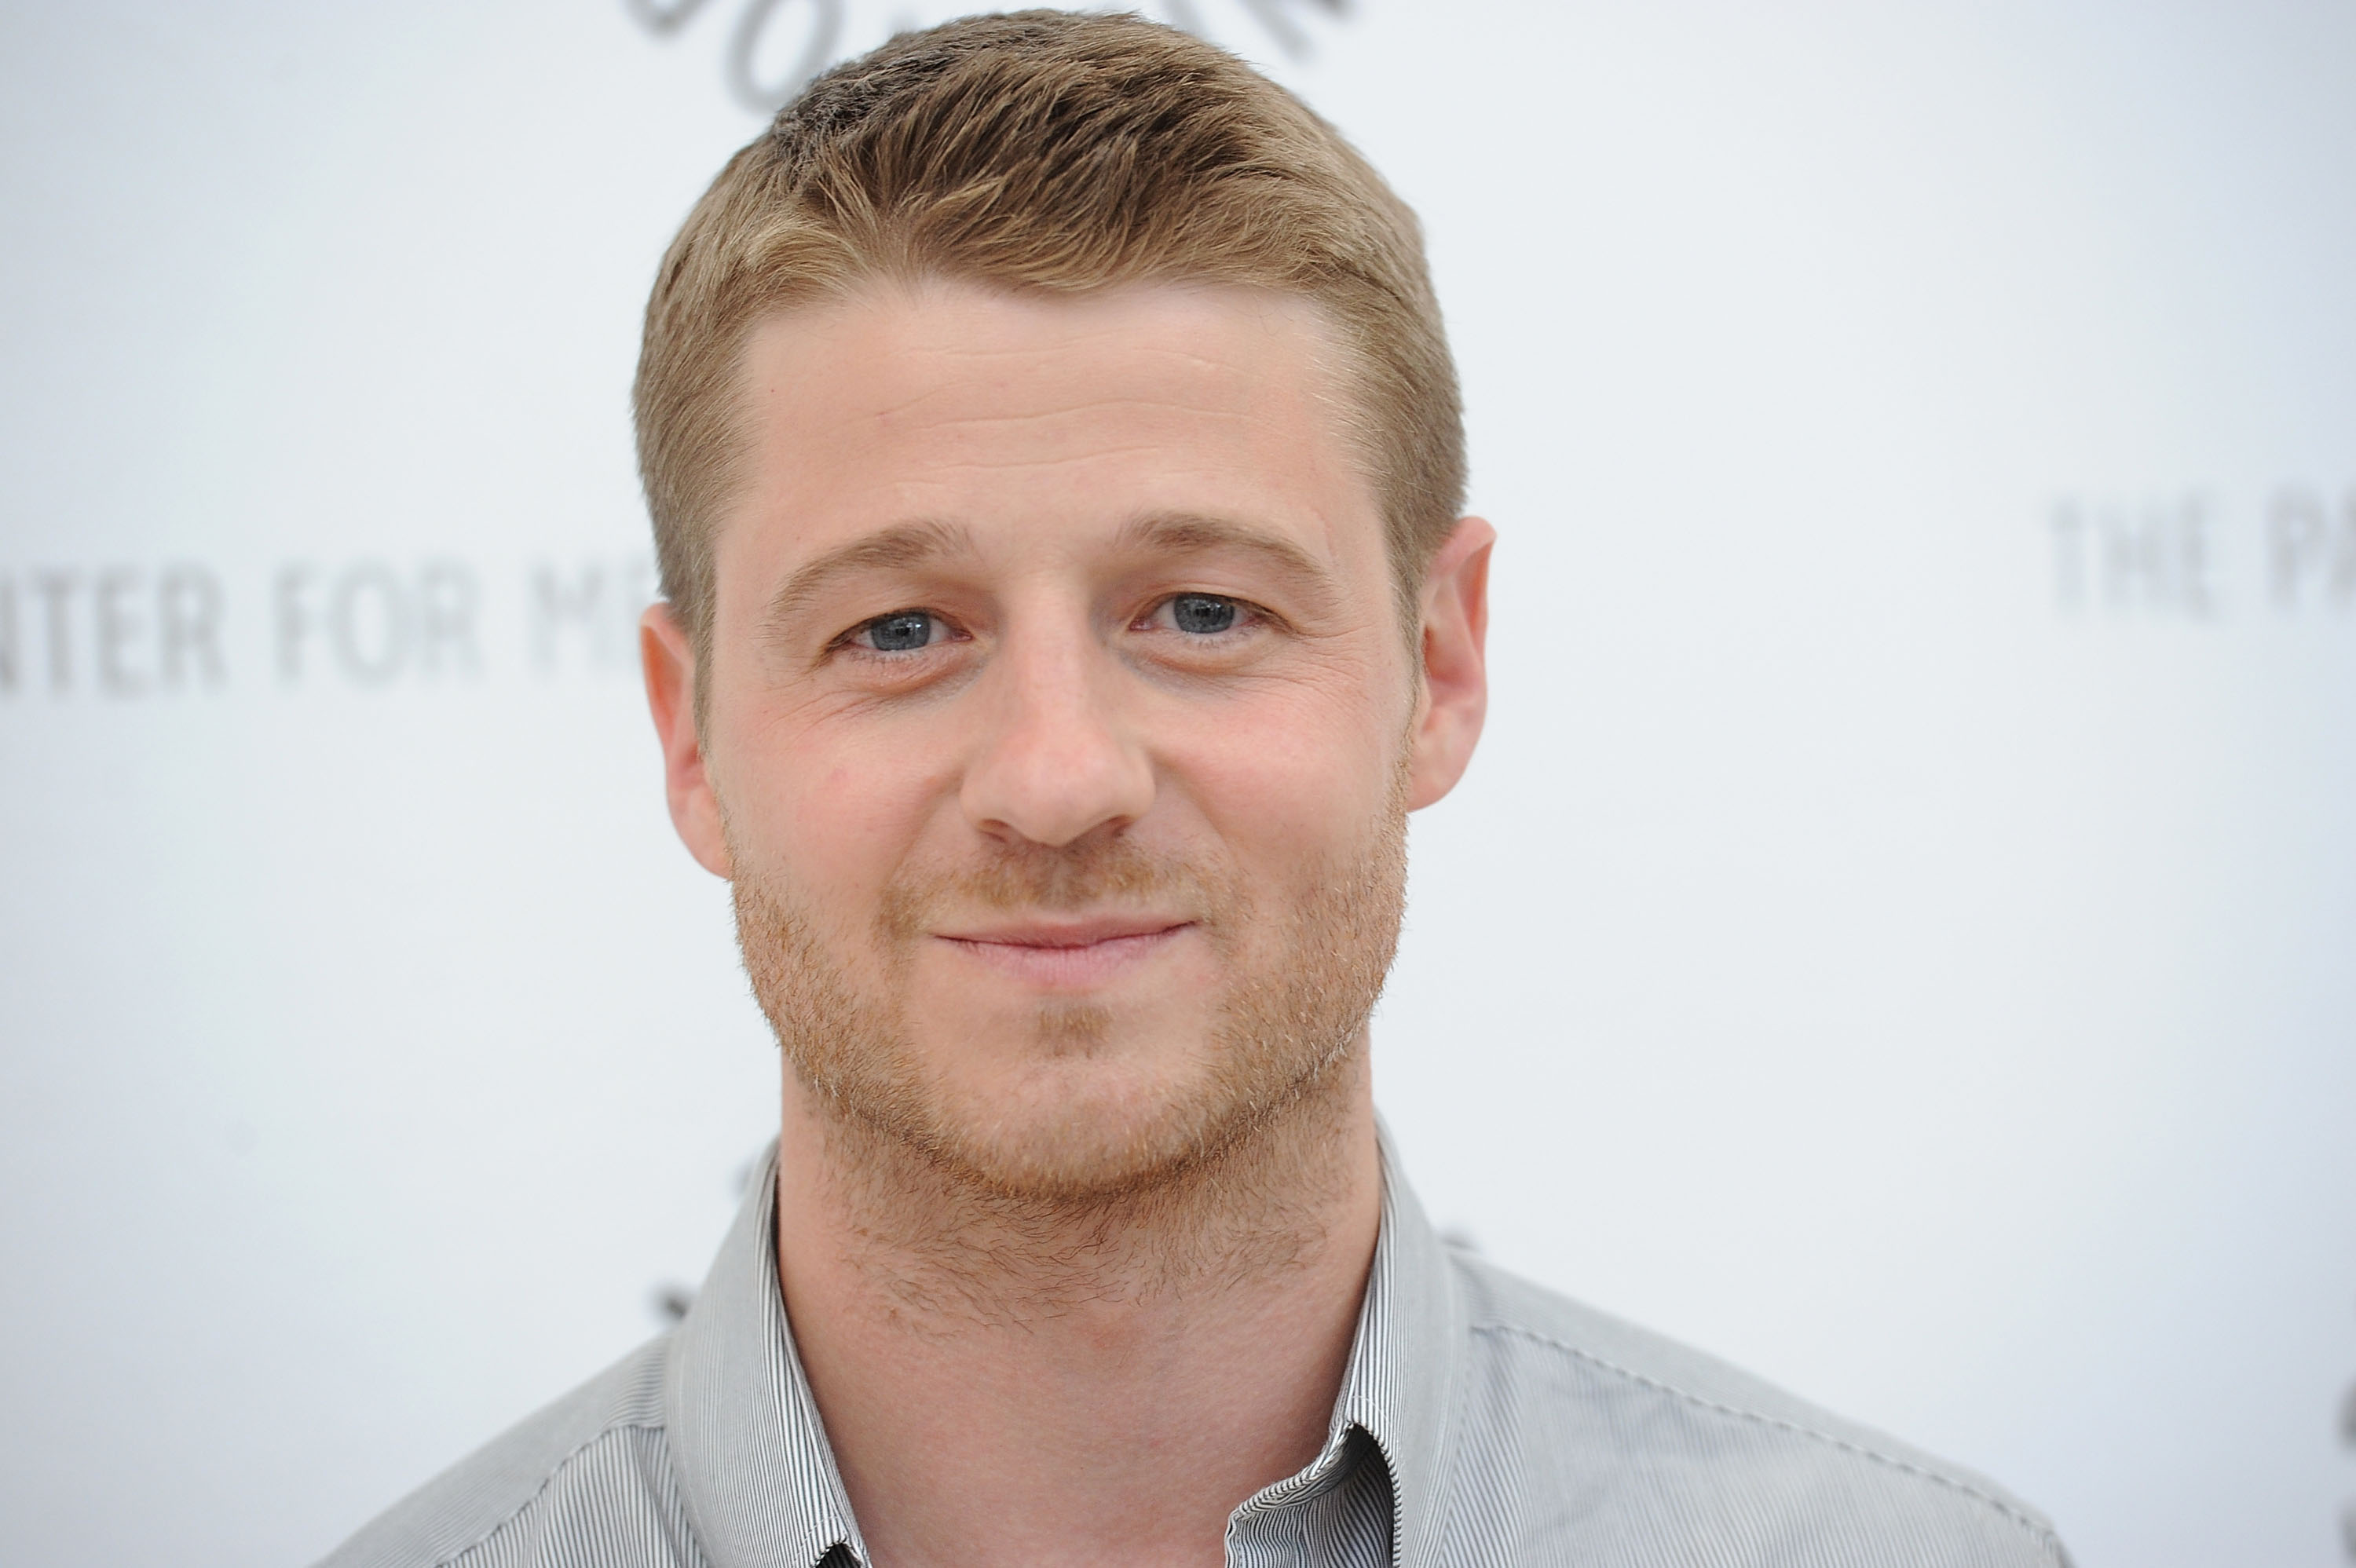 Ben McKenzie Net Worth, Age, Height, Wife, Profile, Movies